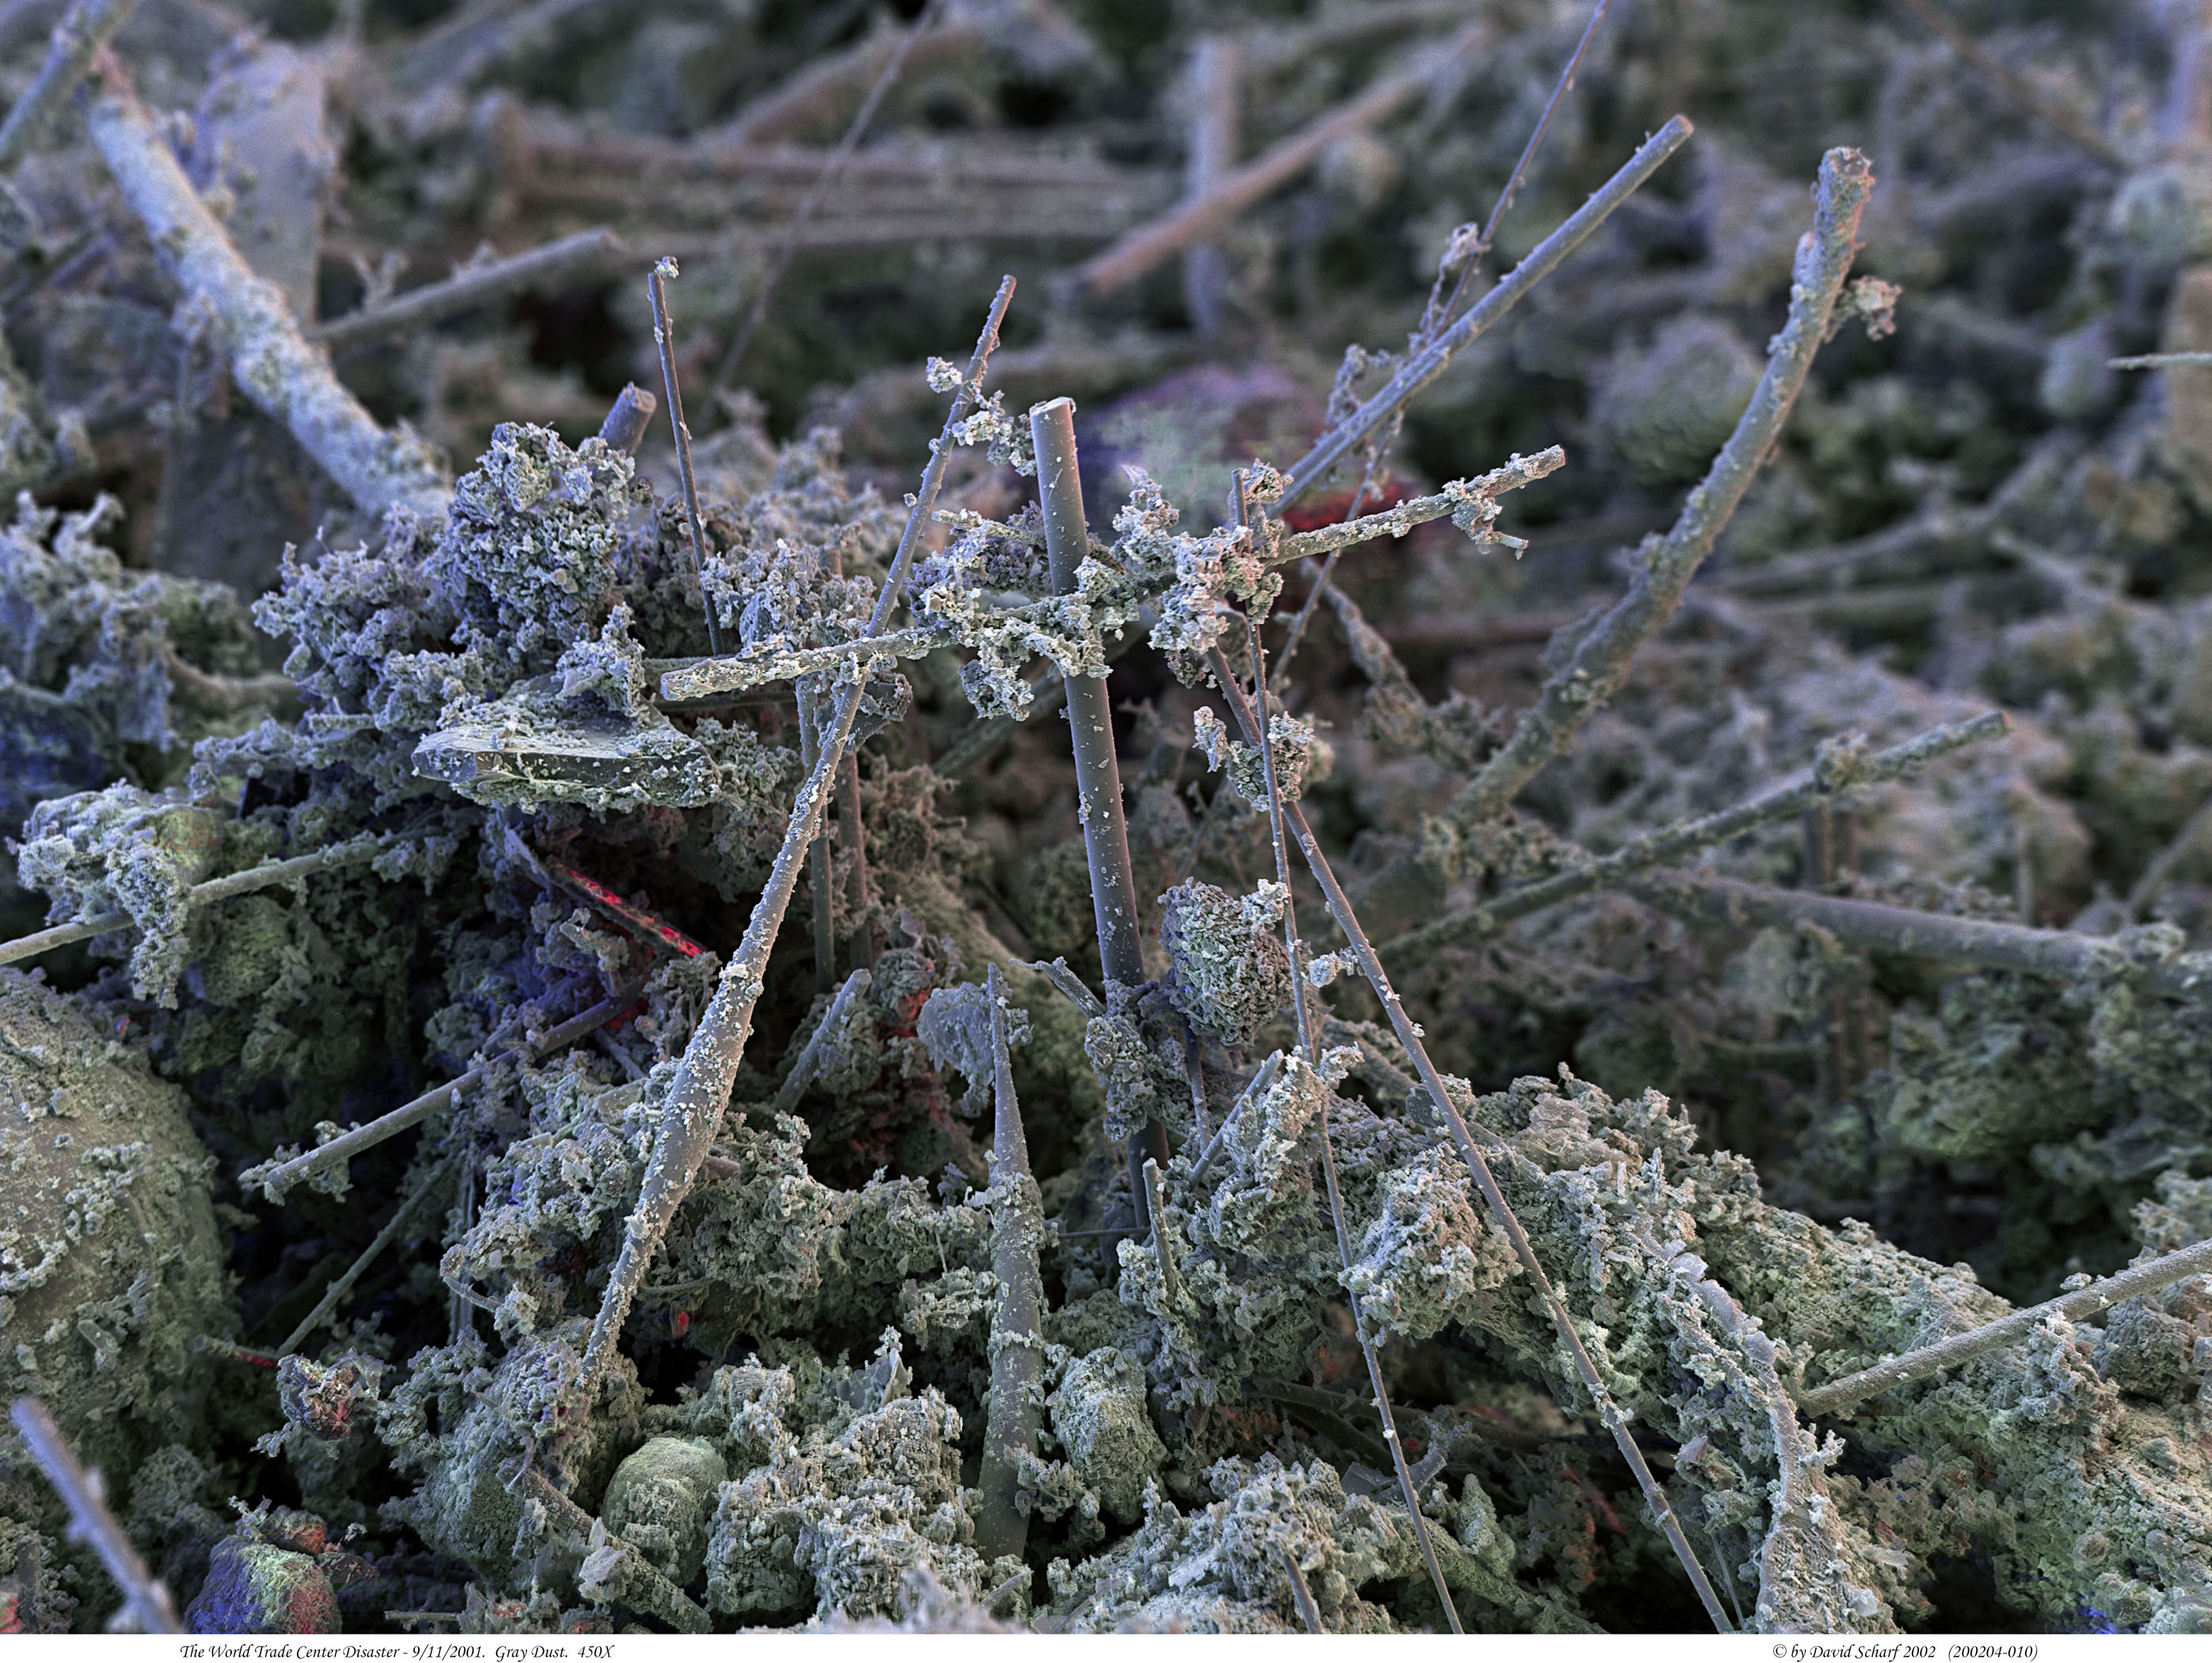 http://911throughoureyes.wordpress.com/tag/scanning-electron-microscope/